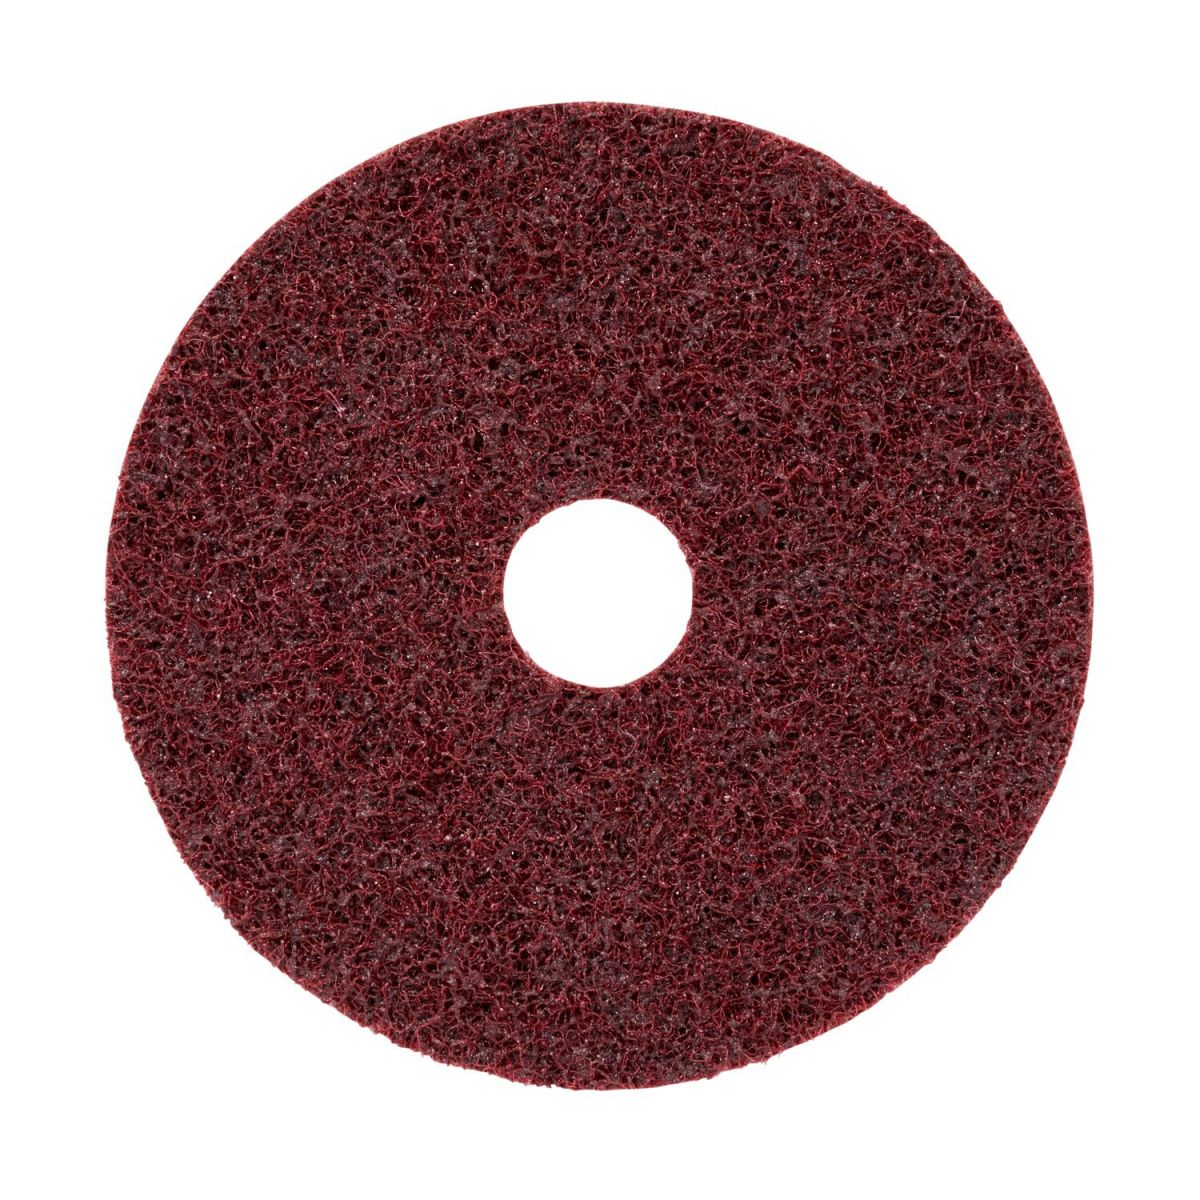 3m scotchbrite surface conditioning schijf scdh 115 mm zonder middengat a med pn60982